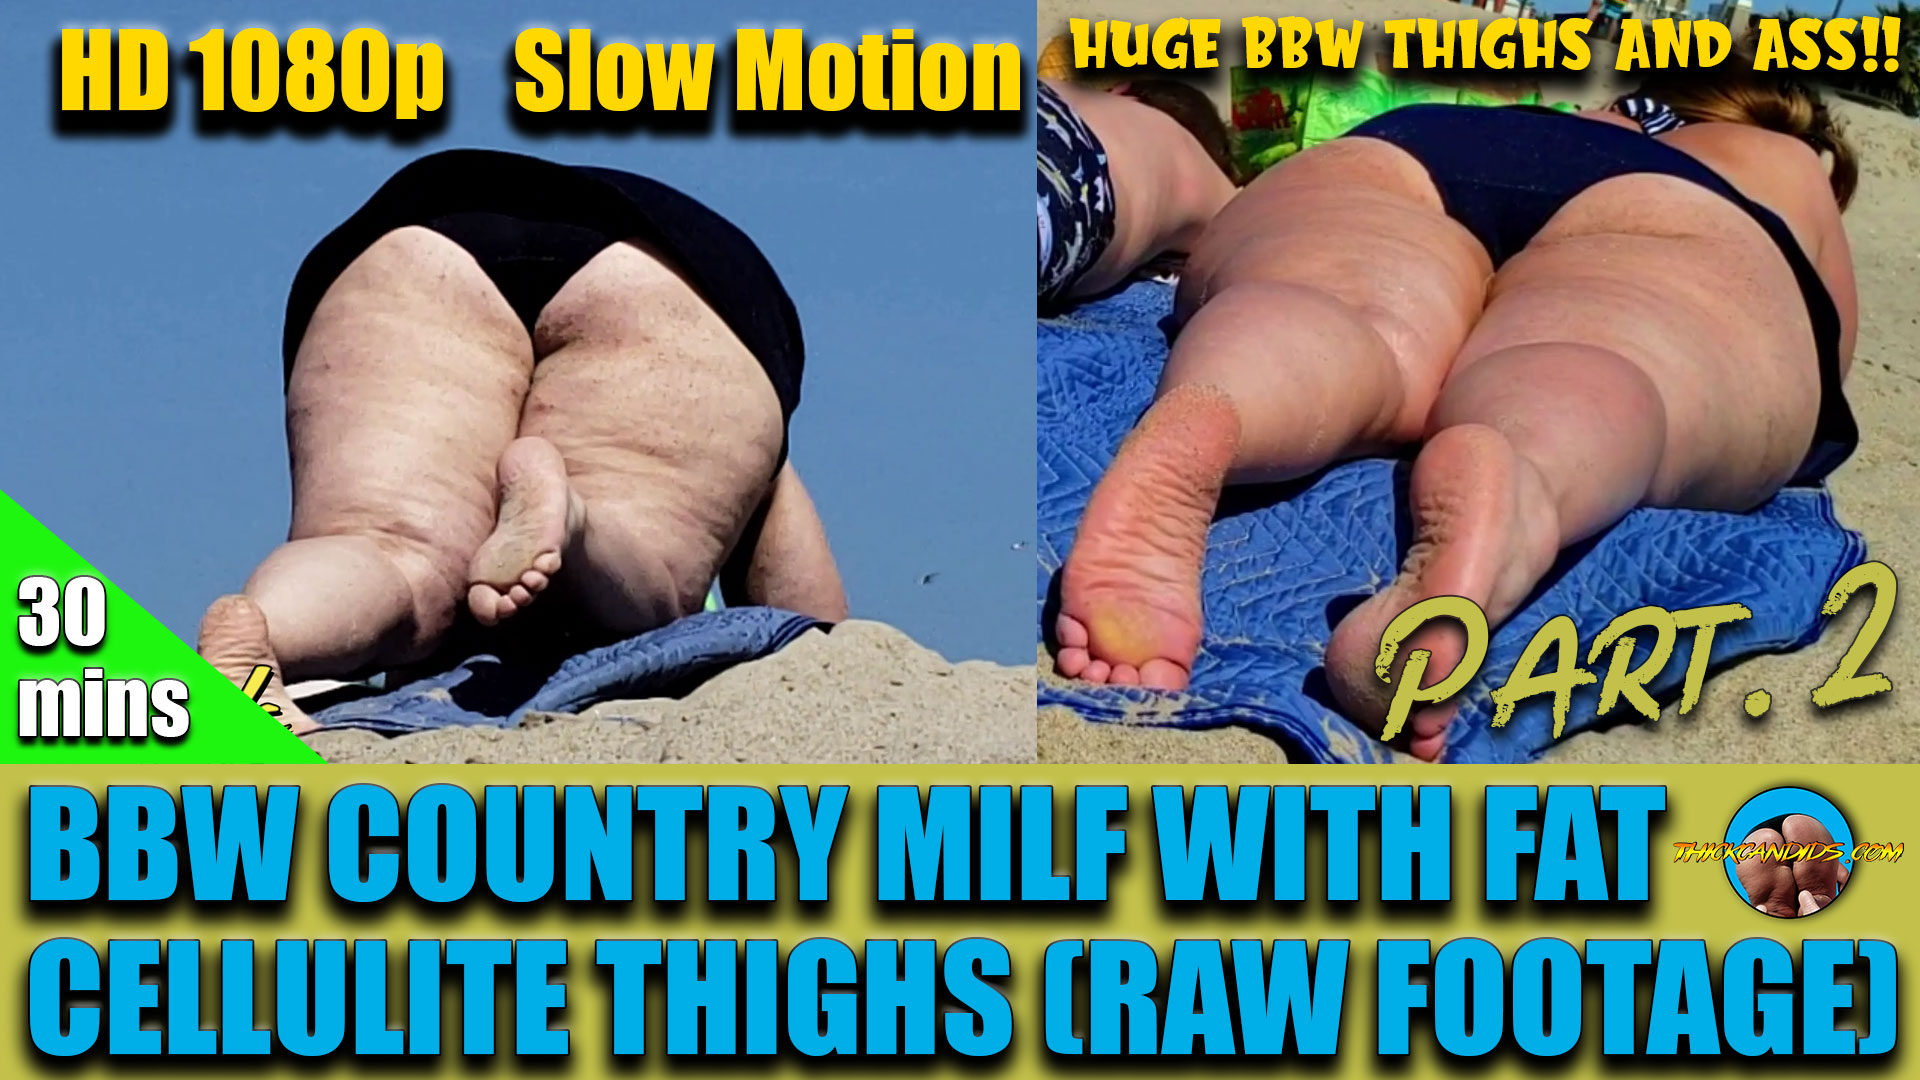 BBW-COUNTRY-MILF-WITH-FAT-CELLULITE-THIGHS-(30mins)-(RAW-FOOTAGE)-Part.-2